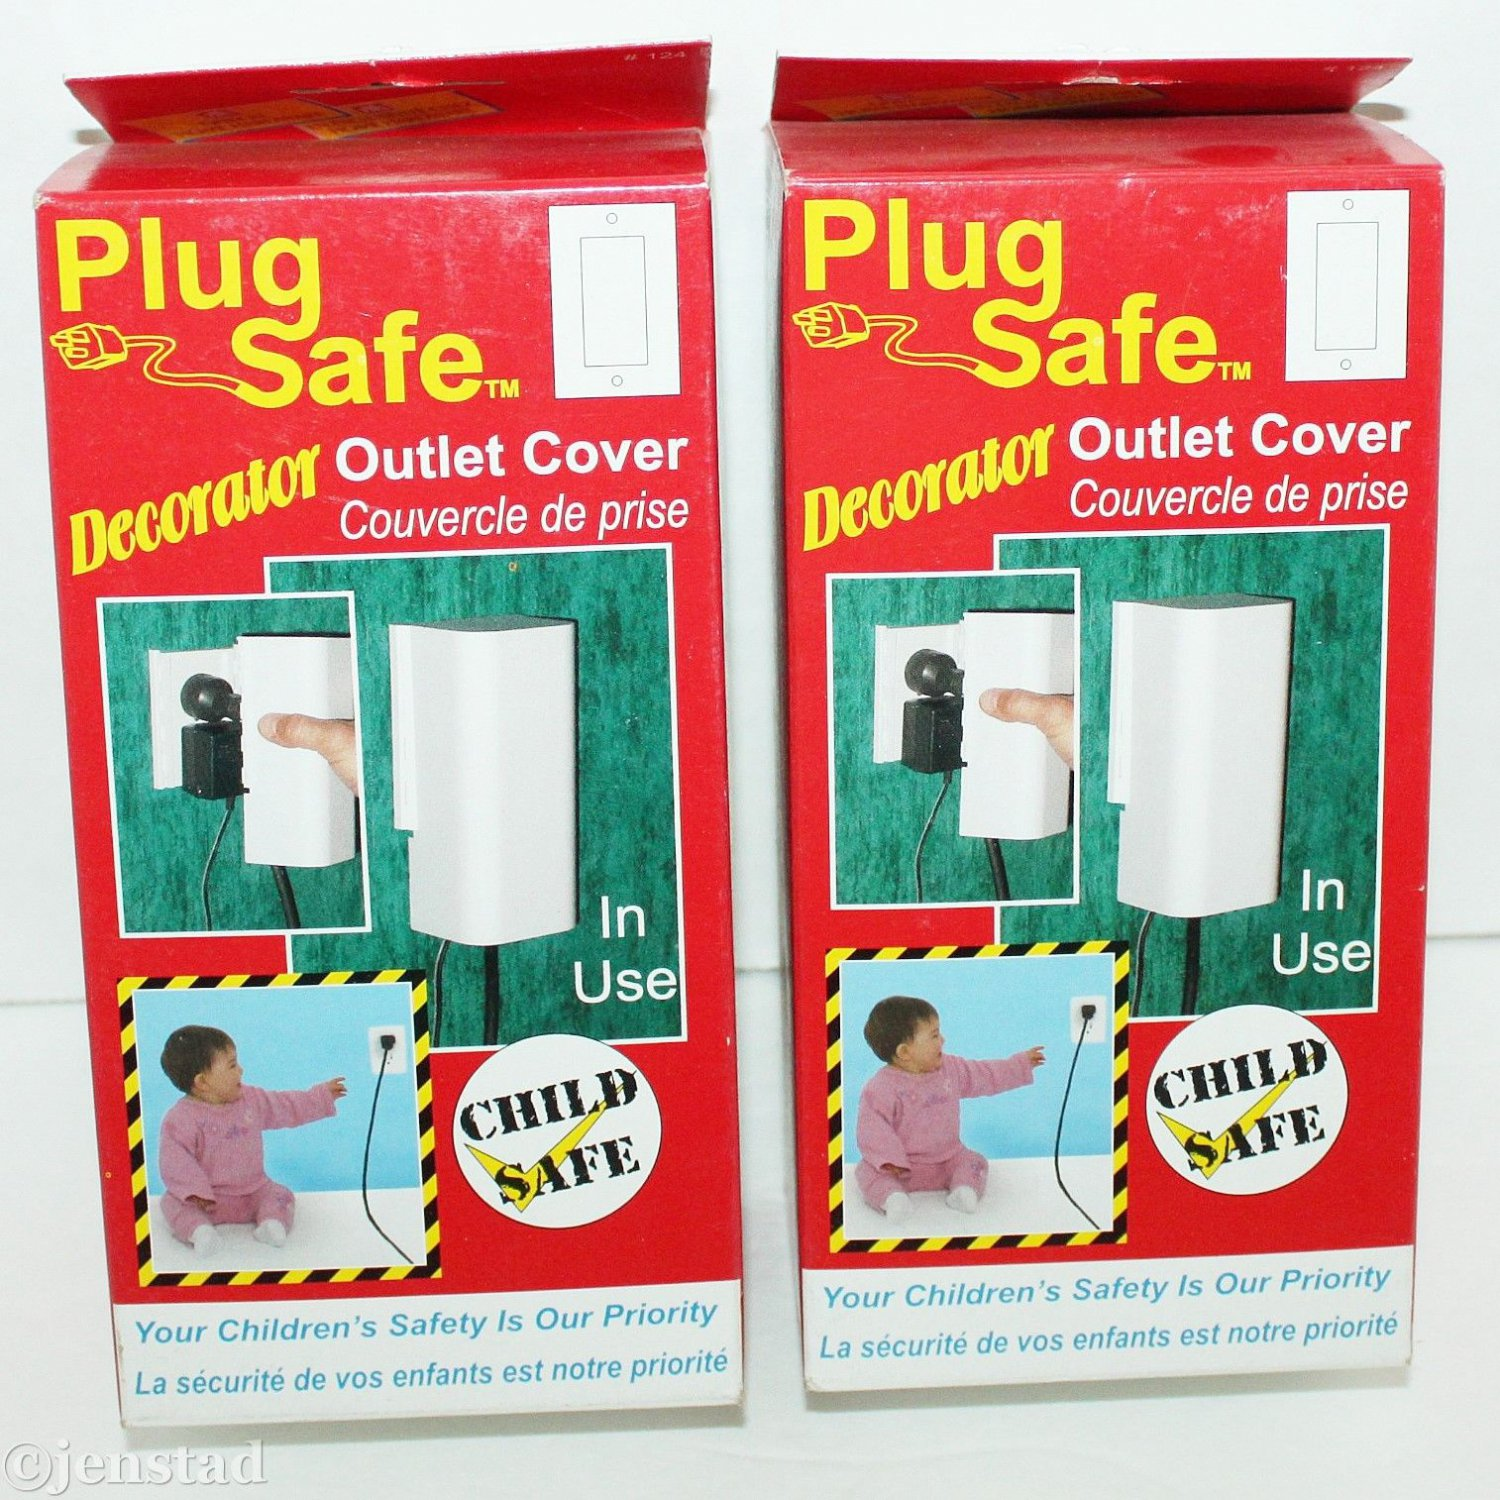 2 LOT PACK PLUG SAFE DECORATOR WIRES OR WALL PLUG OUTLET COVERS BABY CHILD #124